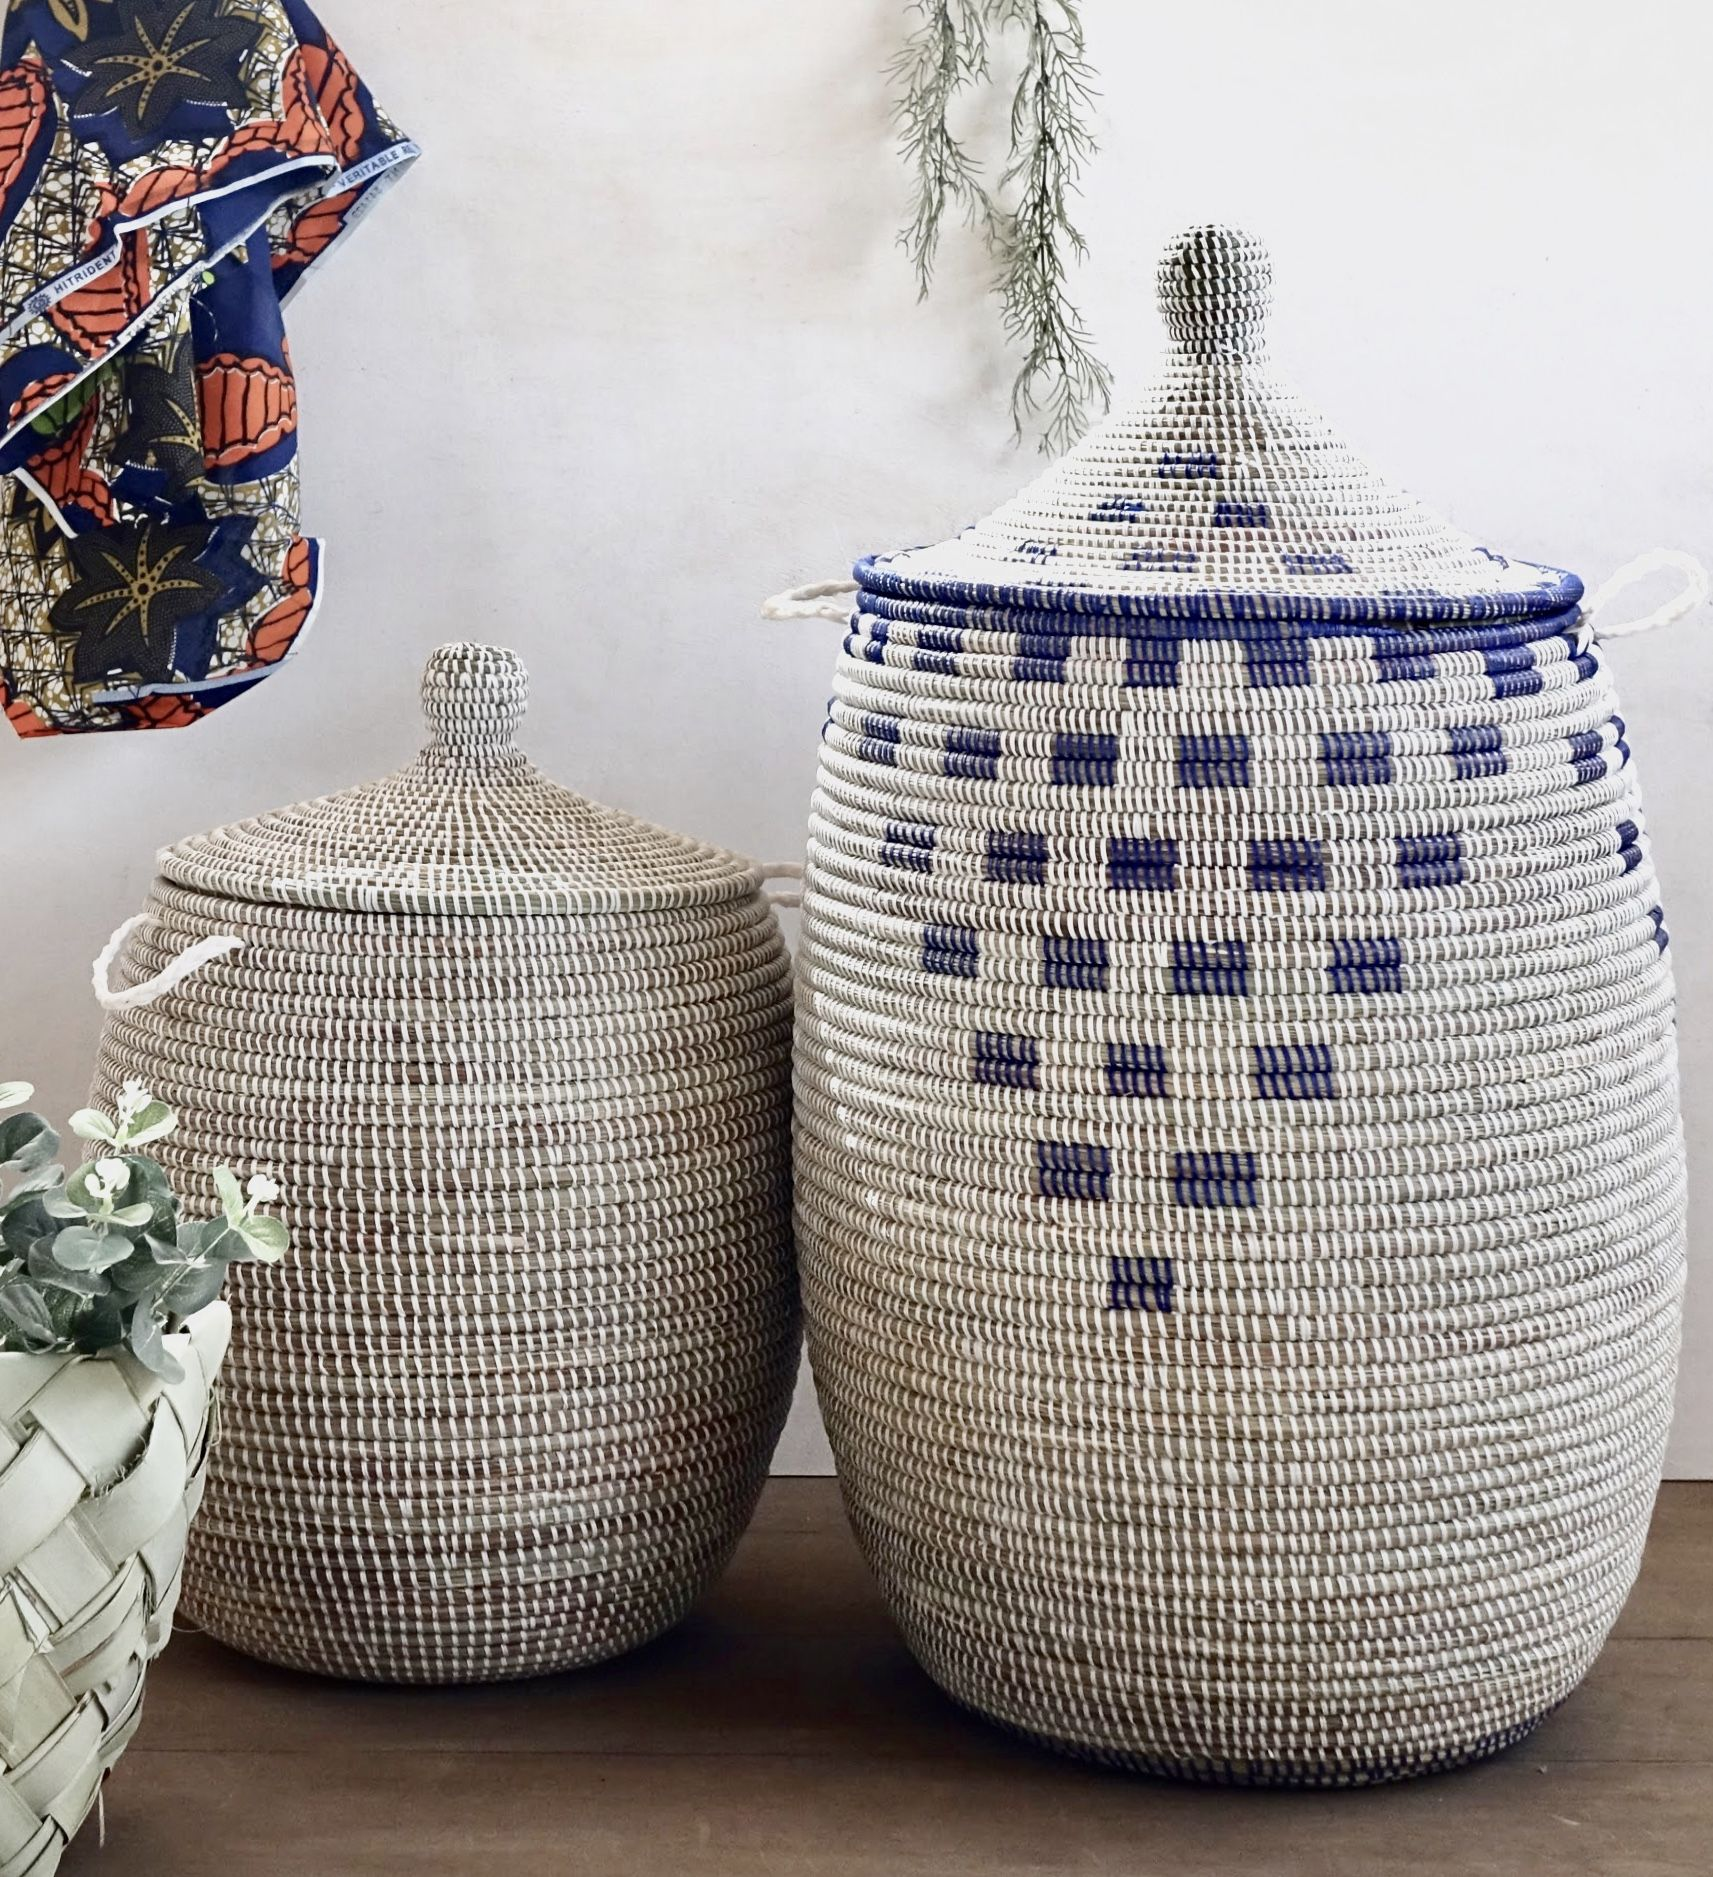 Beautiful Laundry Basket Can Hold Numerous Items And Decorate Your